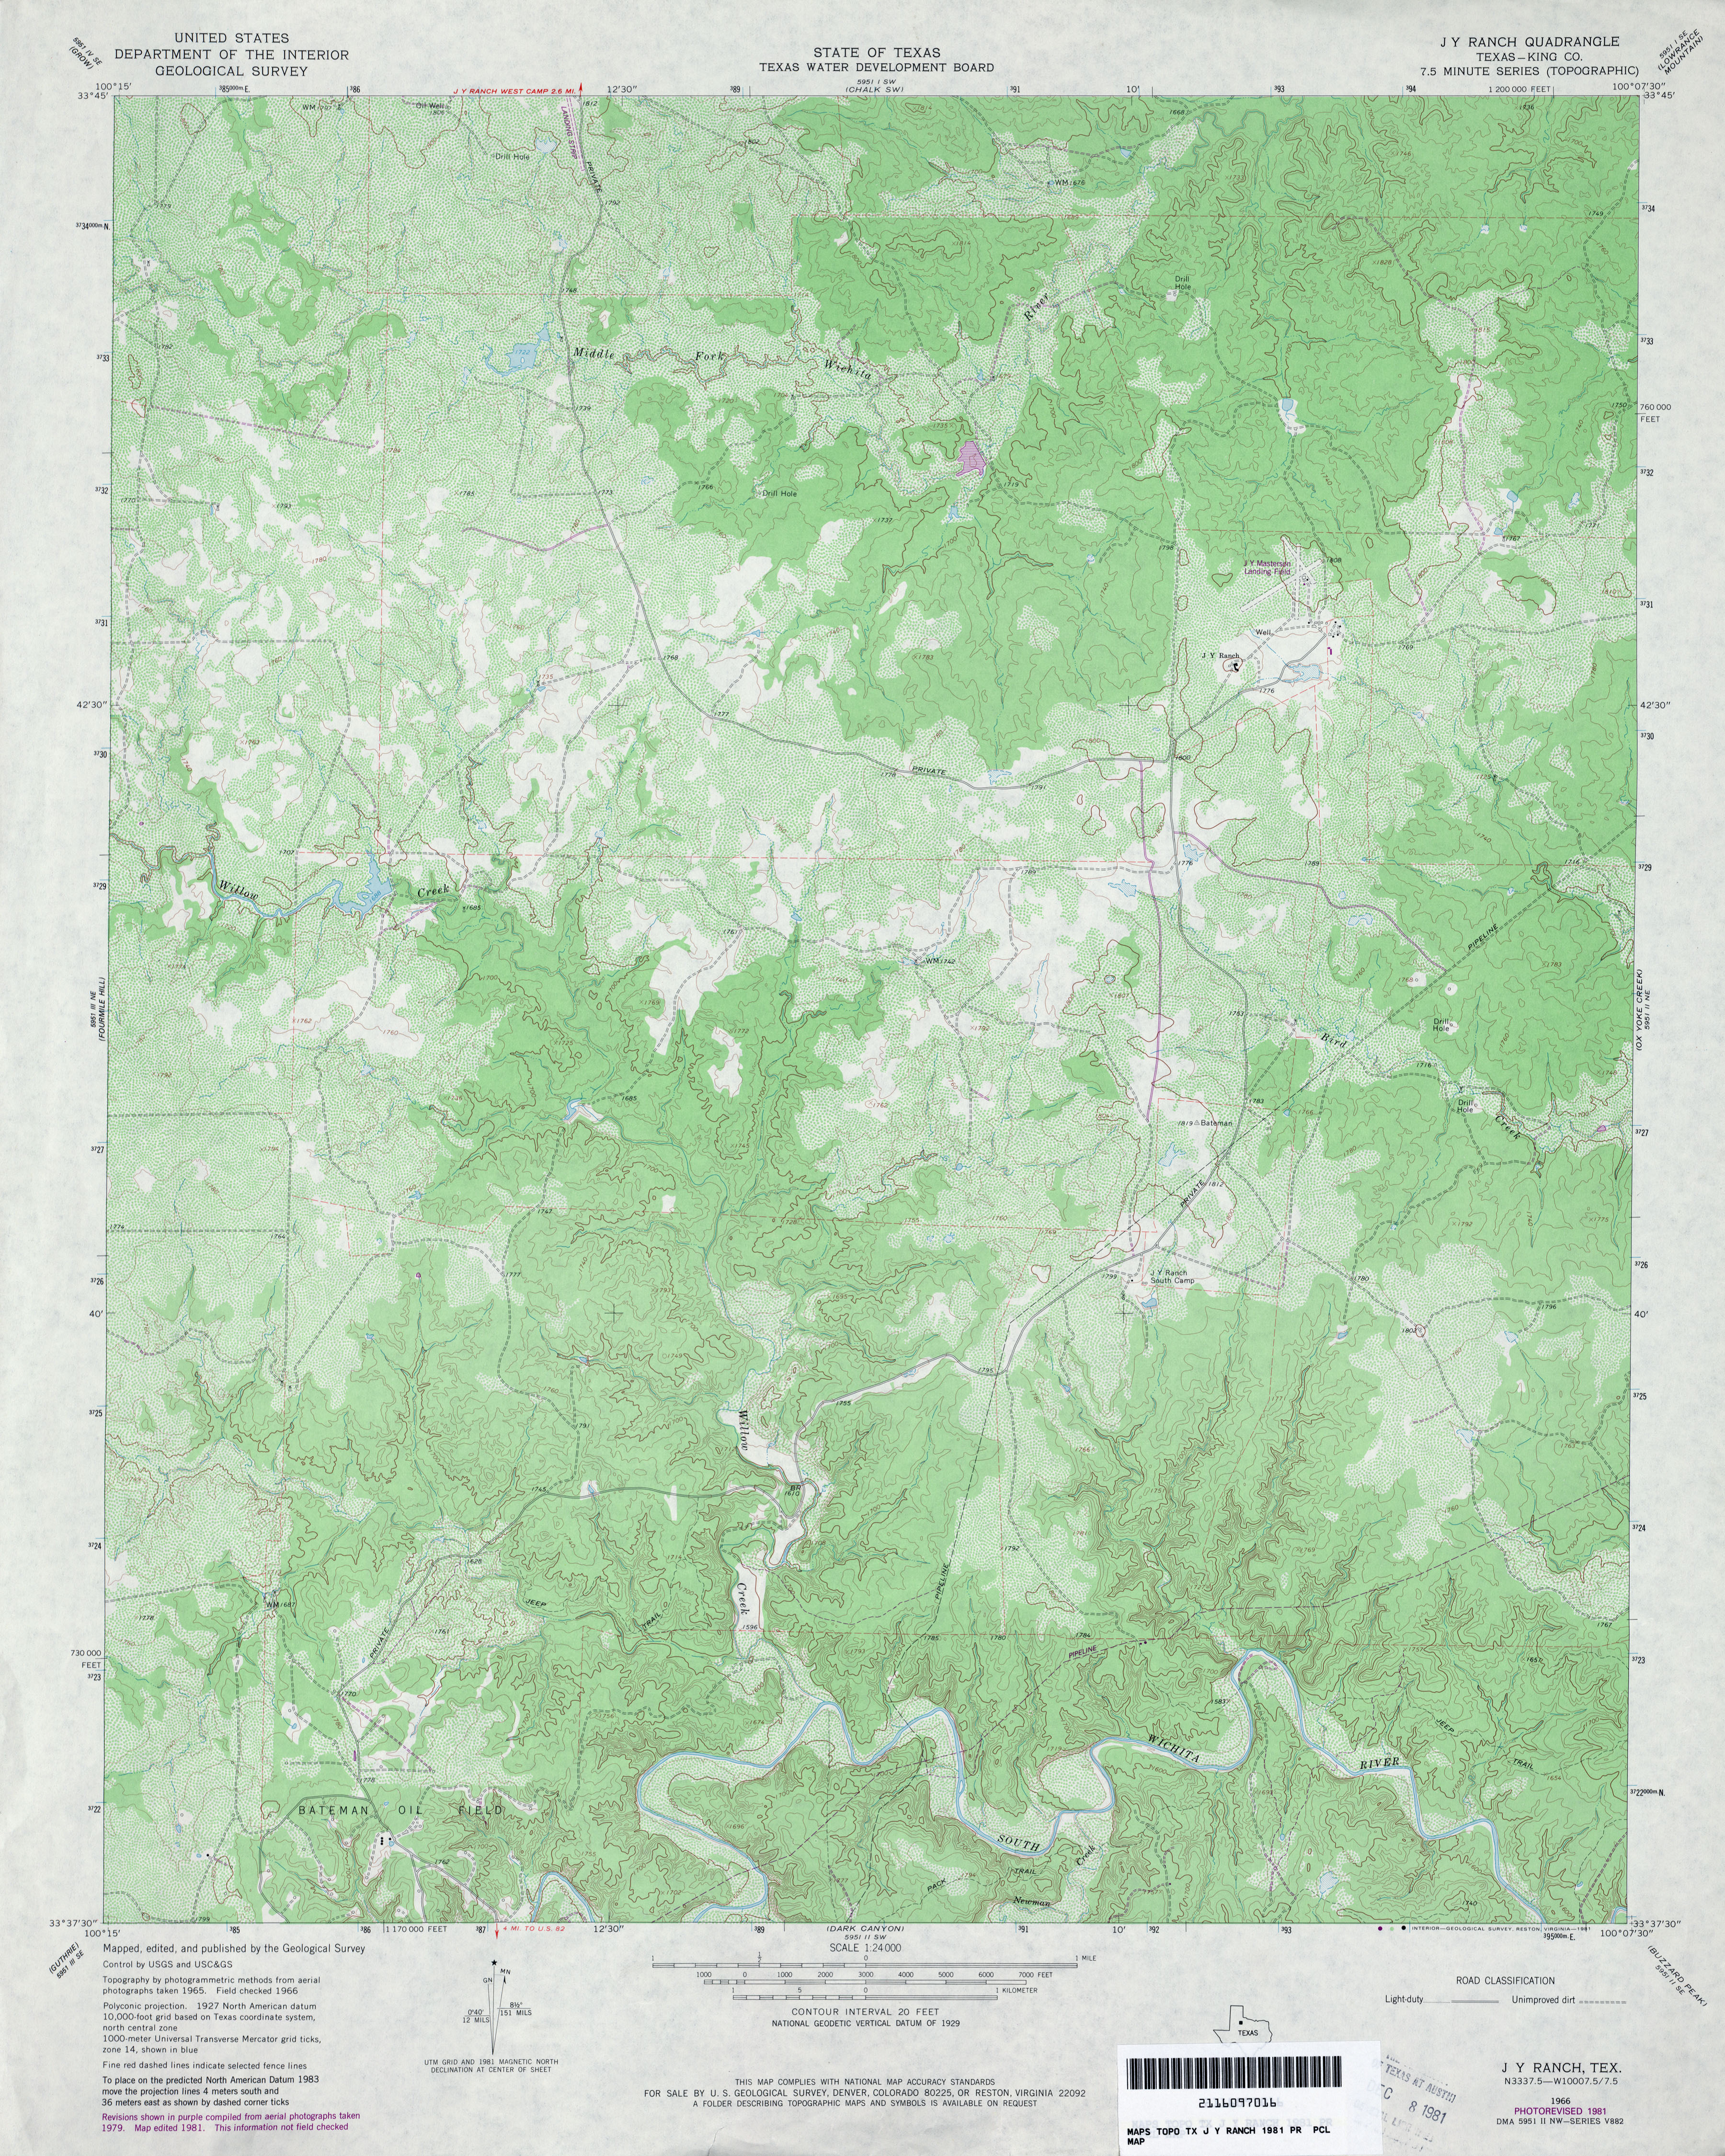 King County Topographic Map.Texas Topographic Maps Perry Castaneda Map Collection Ut Library